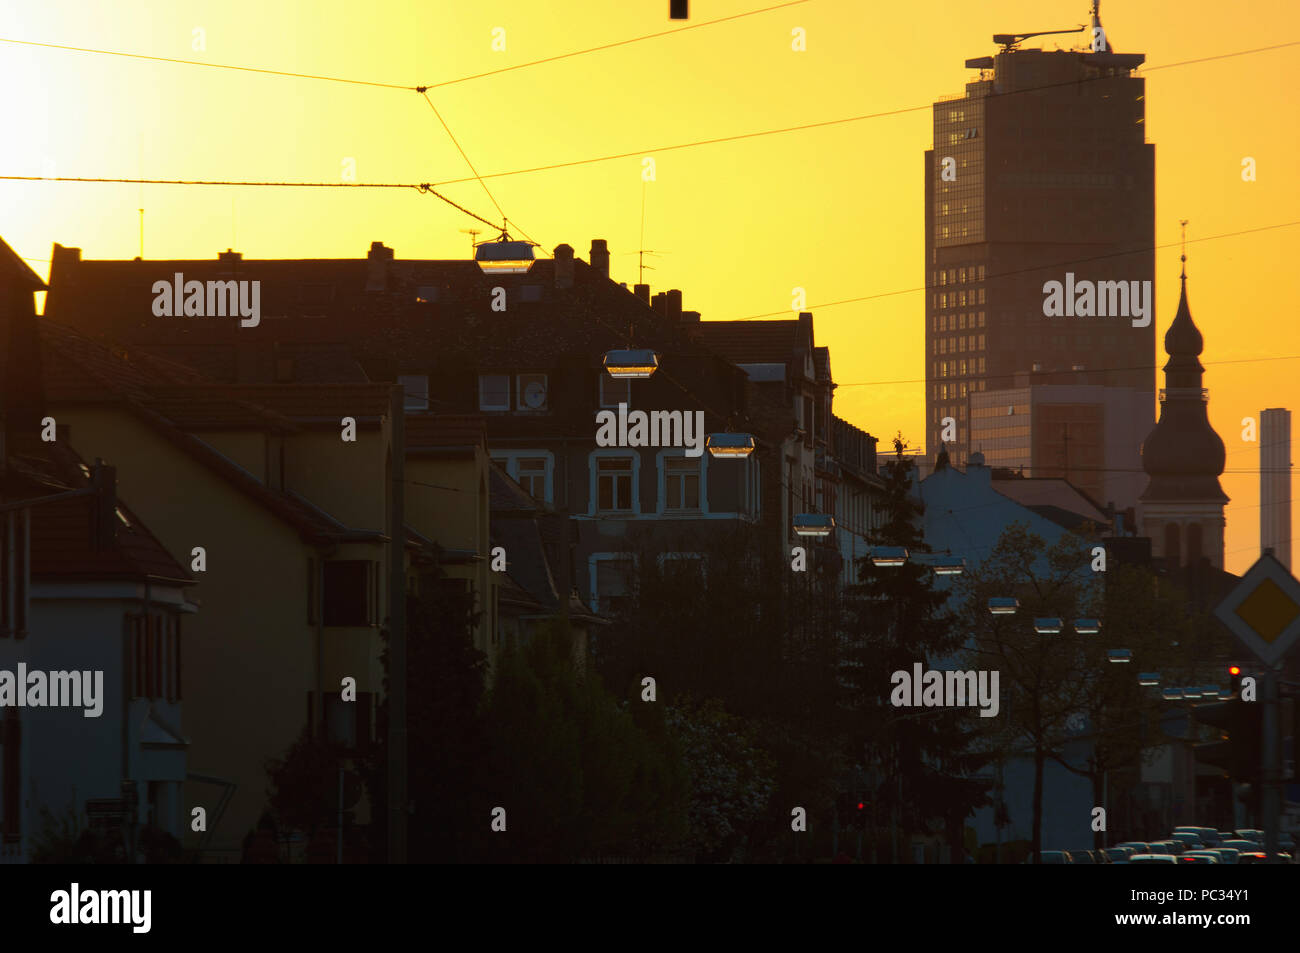 offenbach am main - Stock Image